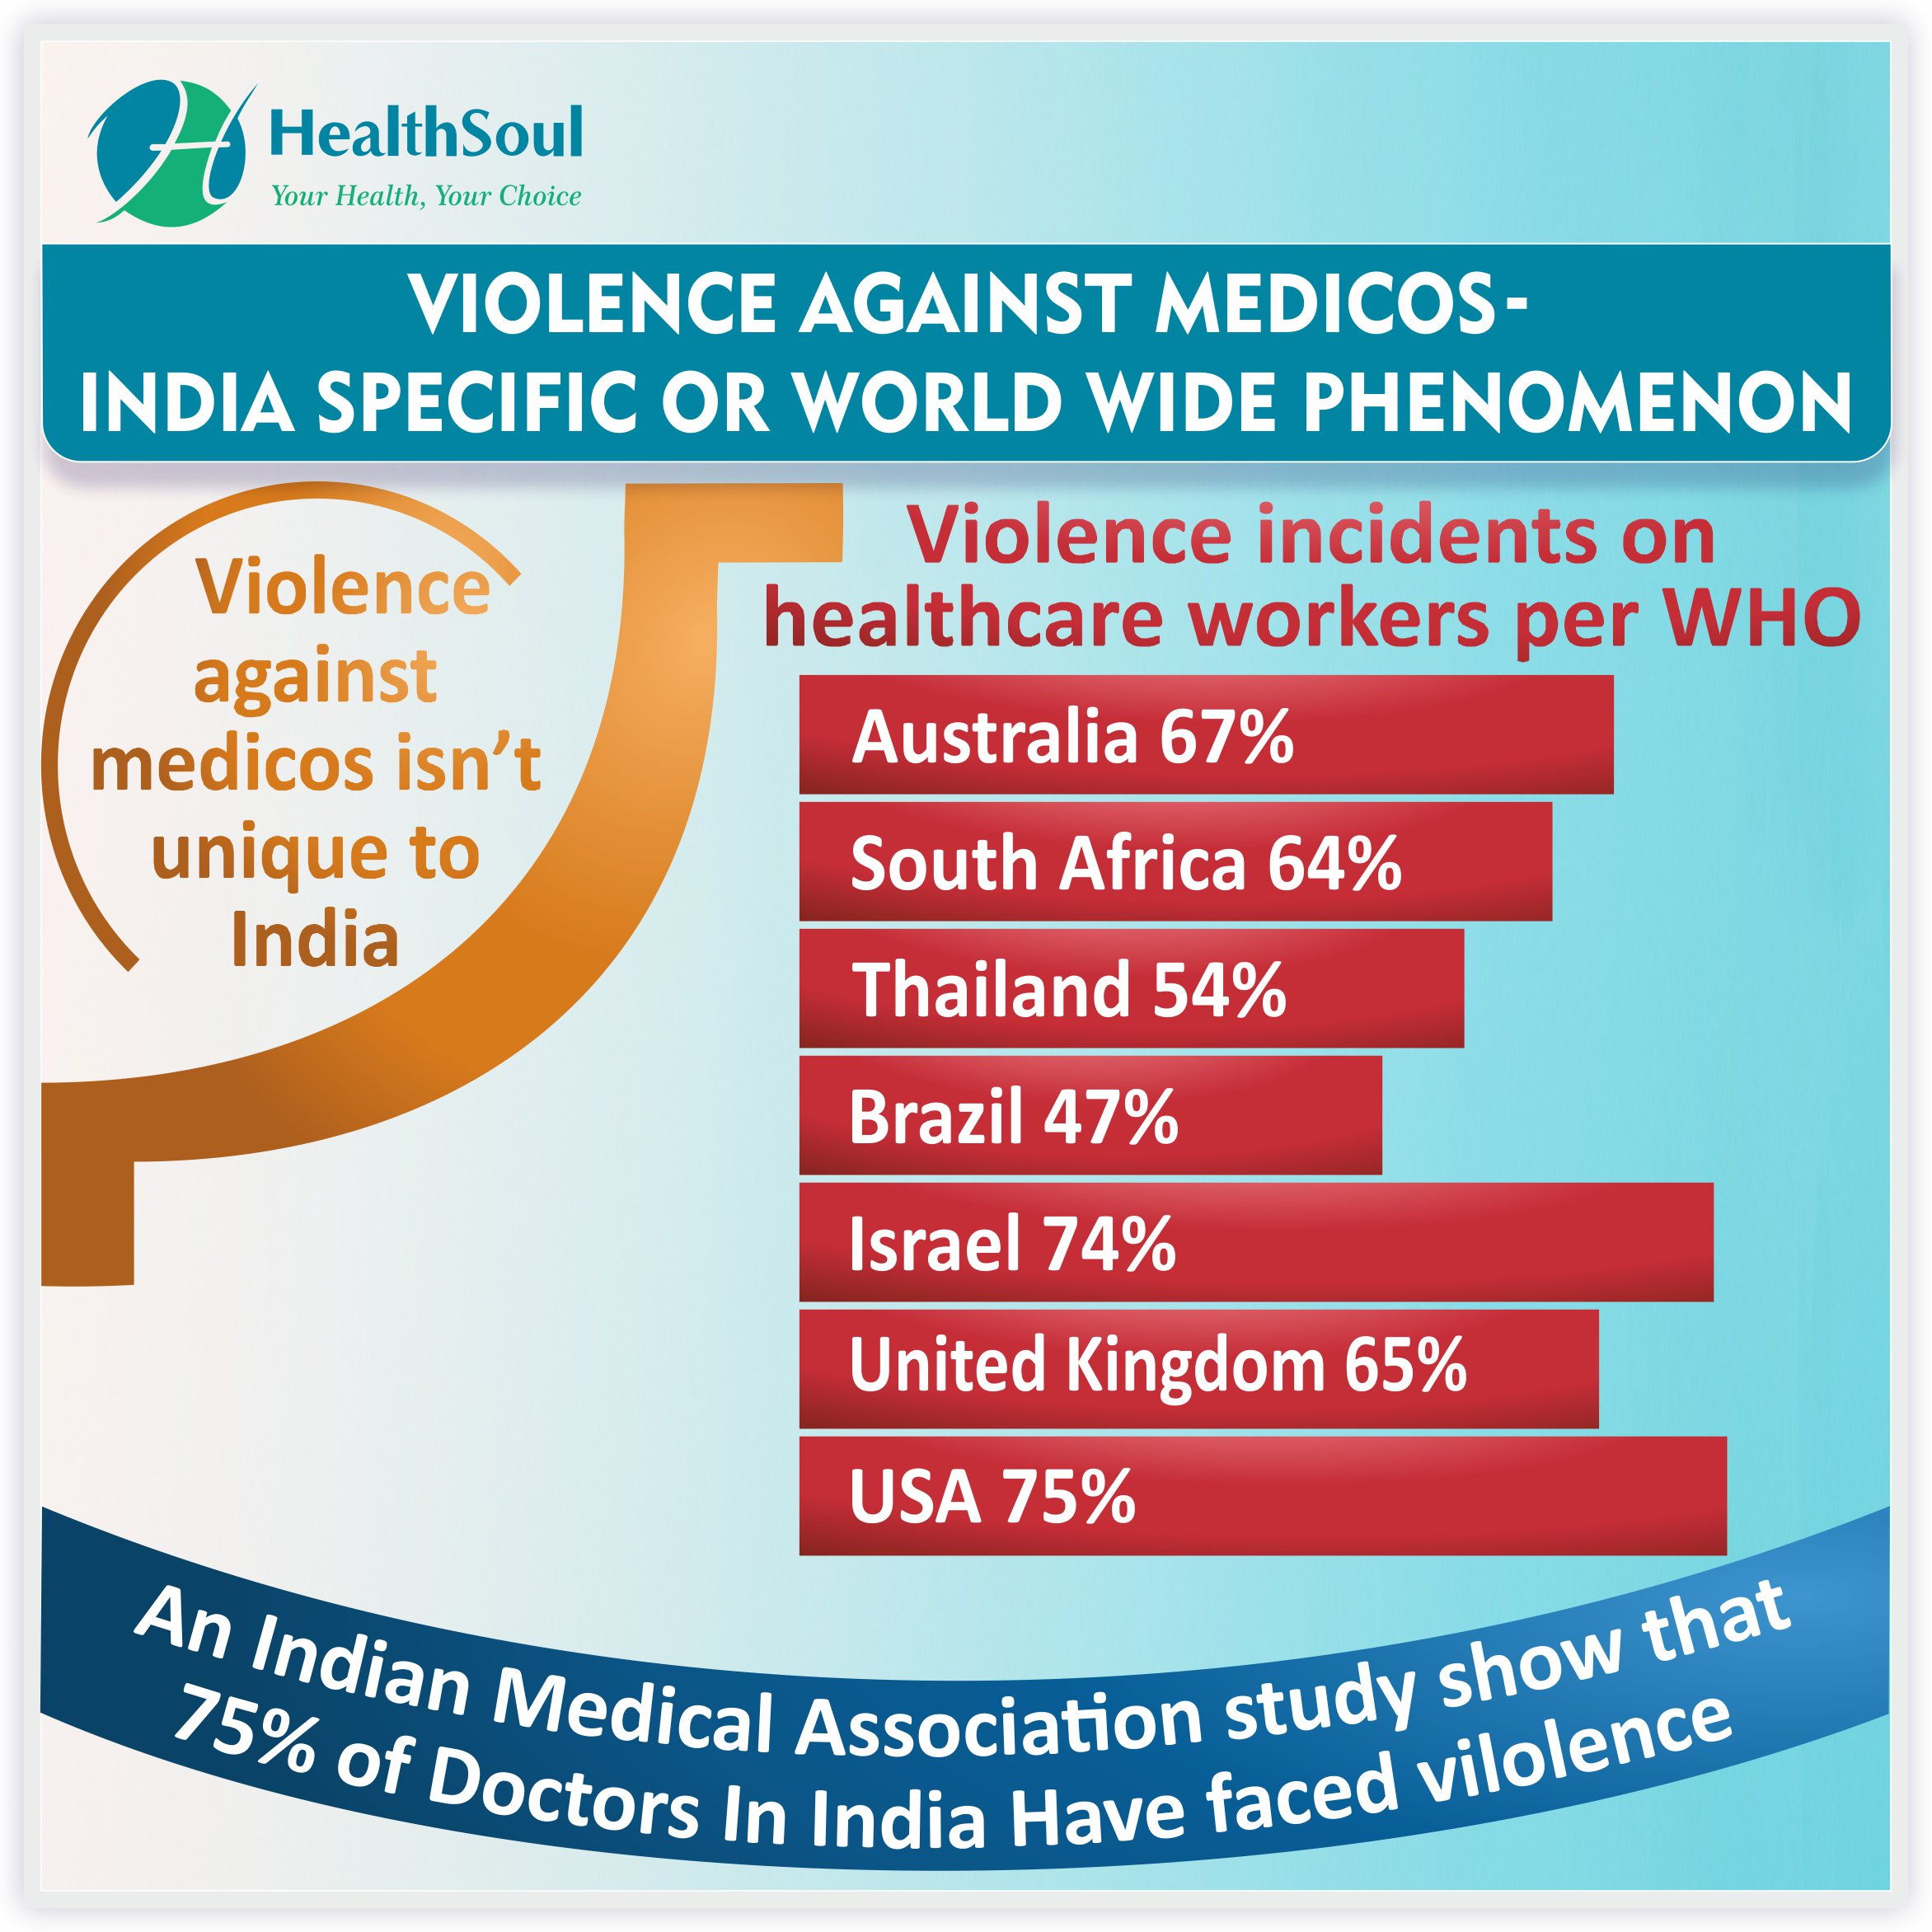 Violence against medicos, a global issue